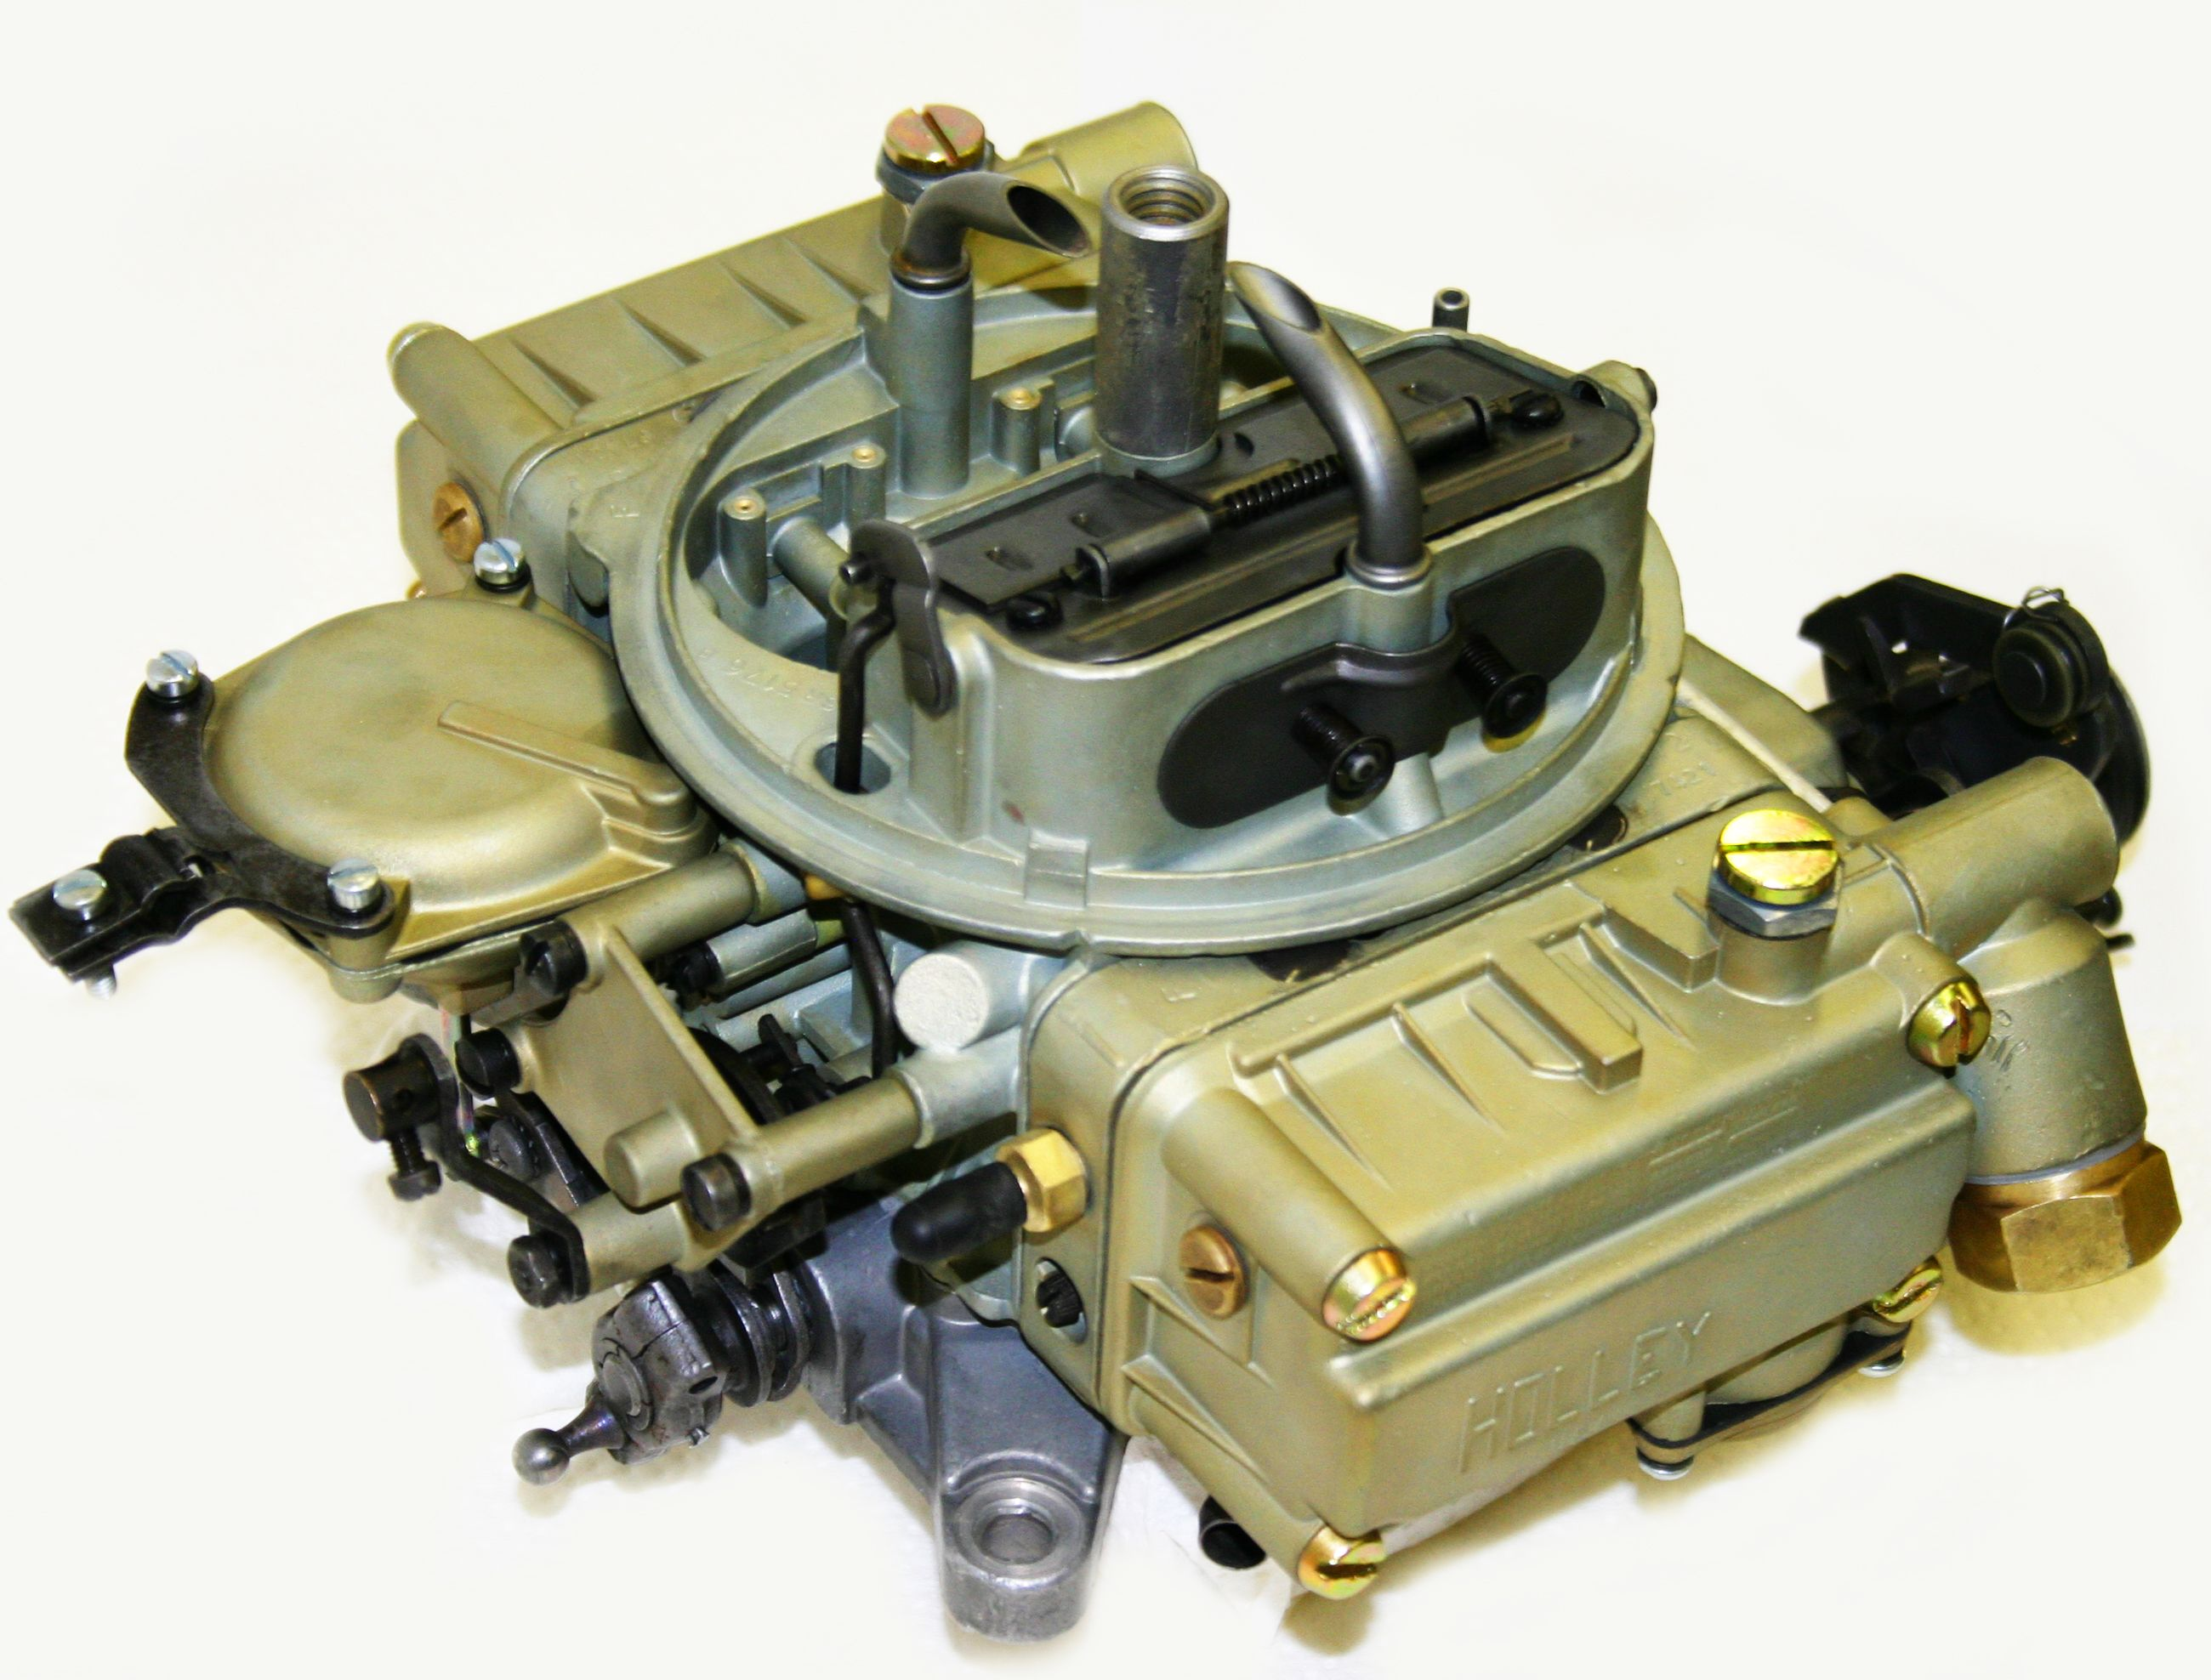 Ford 534 CID carburetor | ENGINES - IN SCALE 1/24,1/25 | Ford